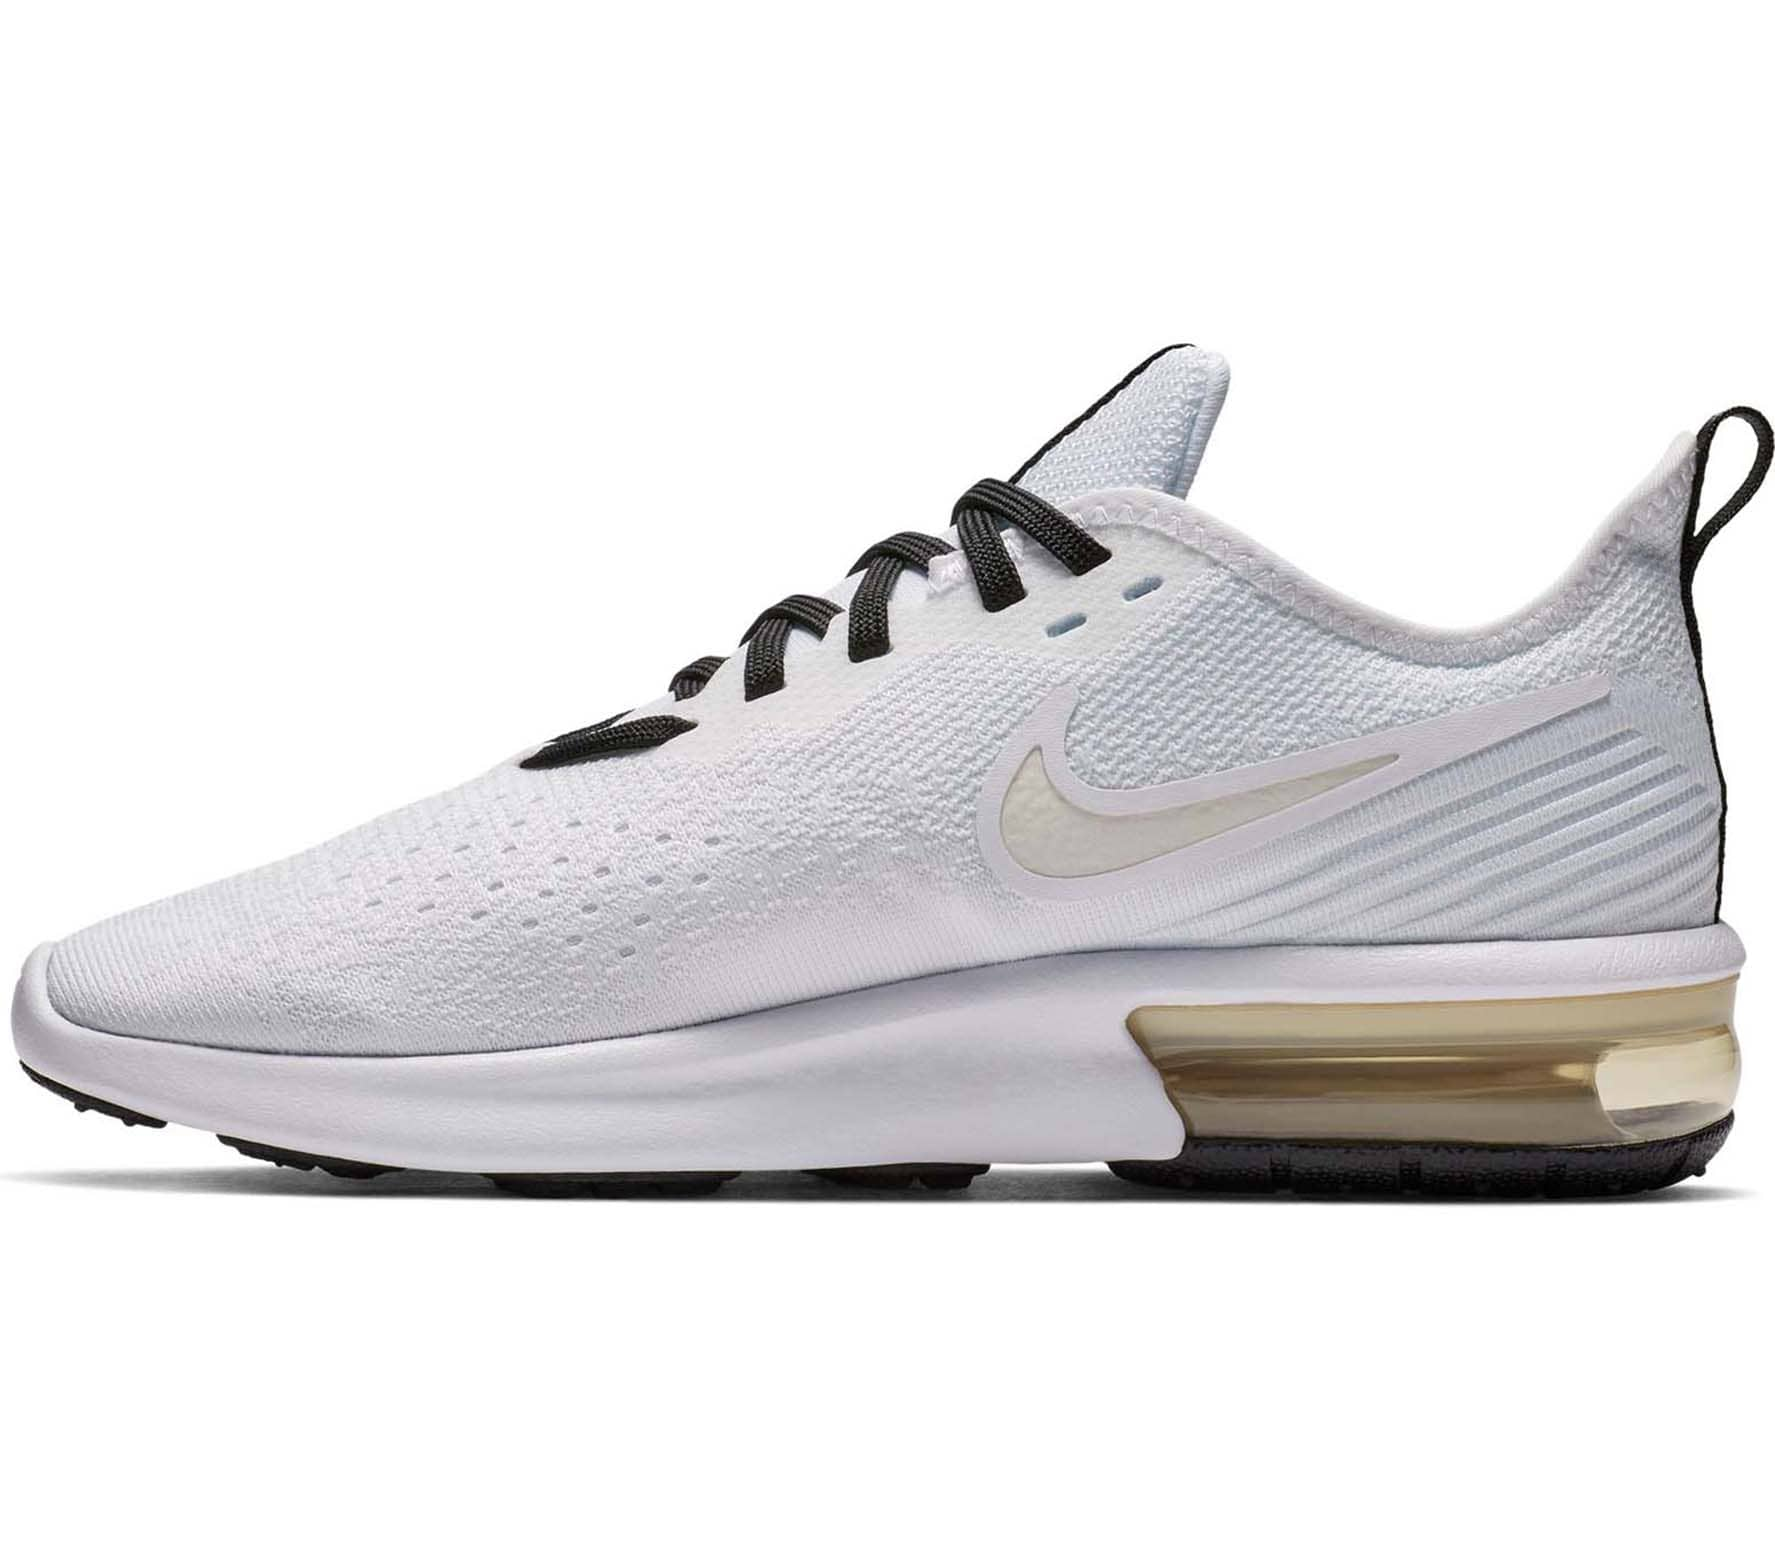 72cd443002 Nike Air Max Sequent 4 Donna bianco